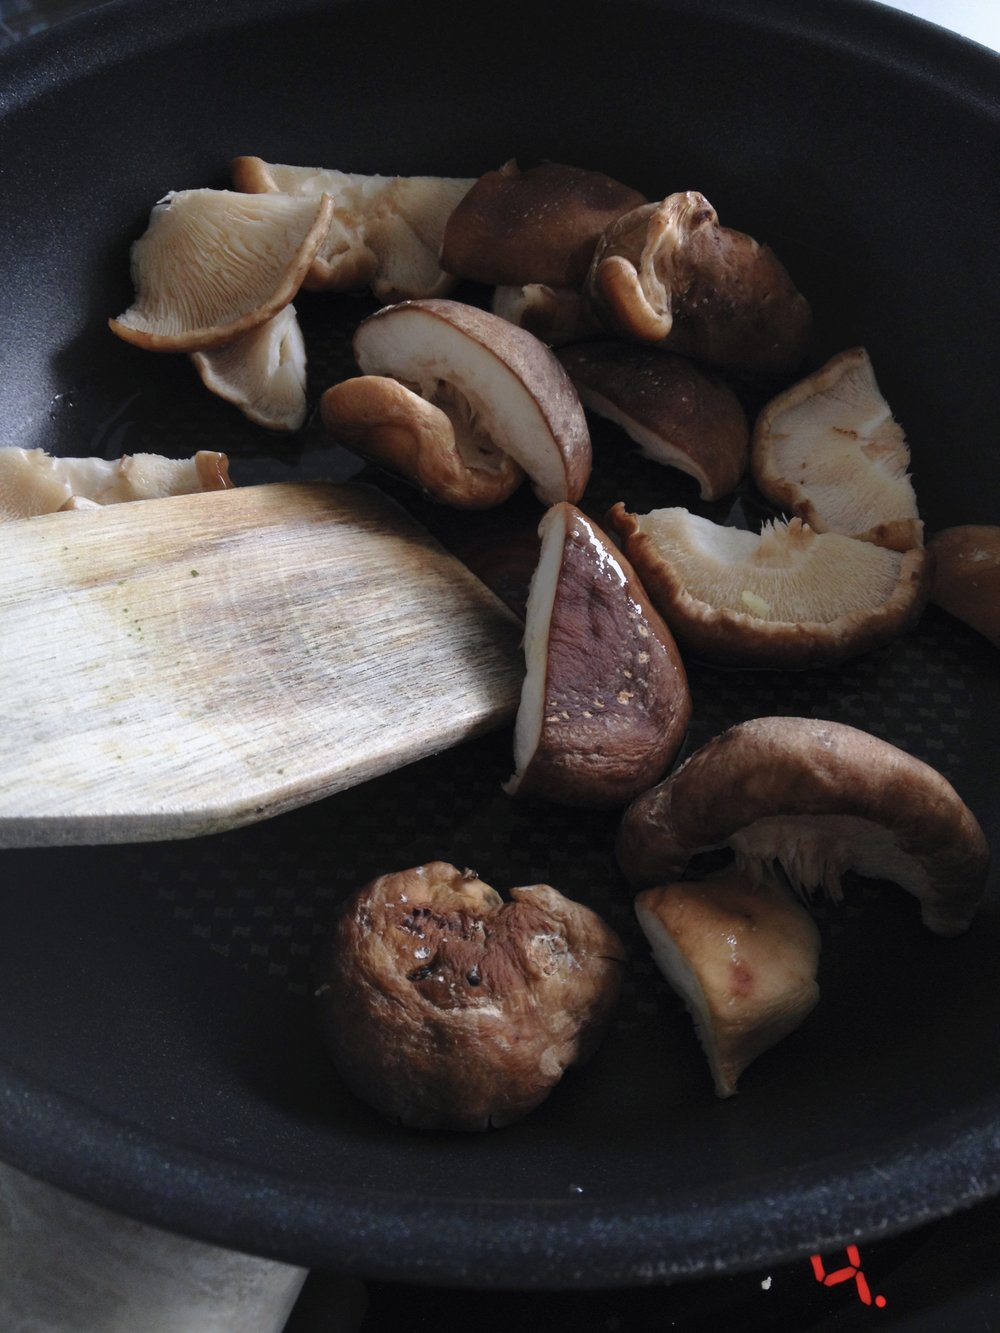 Sauté the shiitakes in a teriyaki marinade to help bring out the taste of these shiitakes.